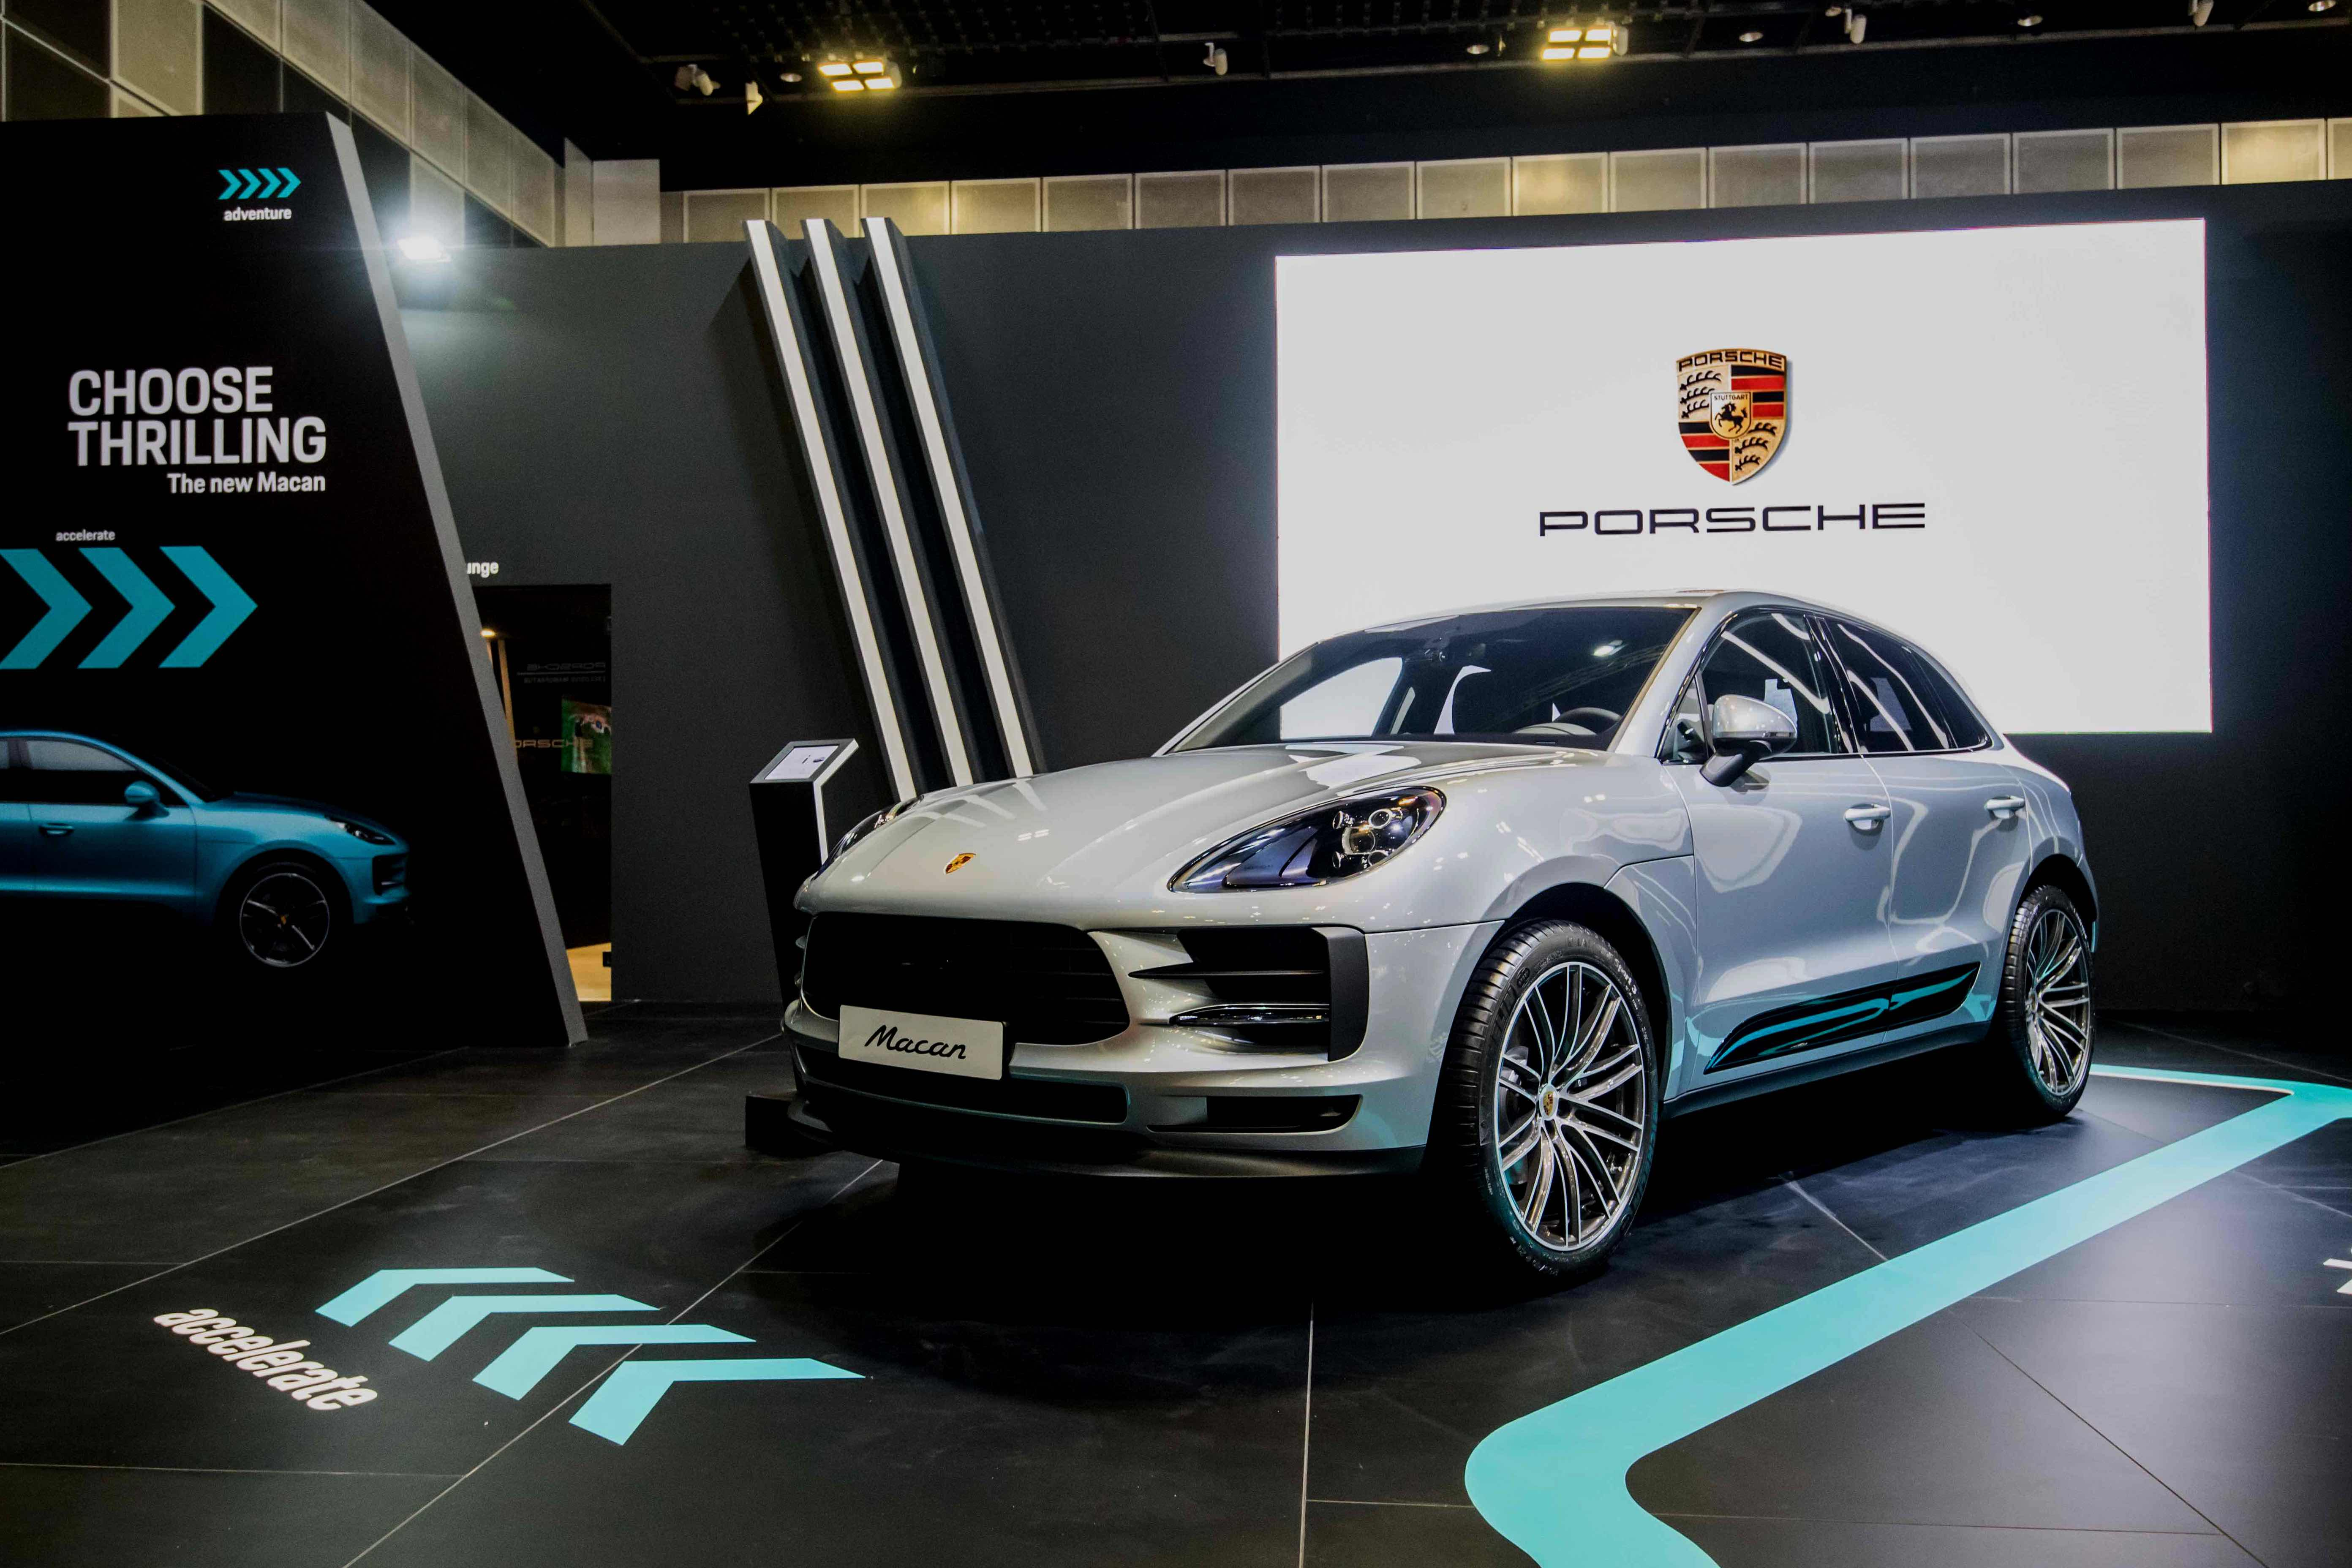 The premiere of the new Porsche Macan